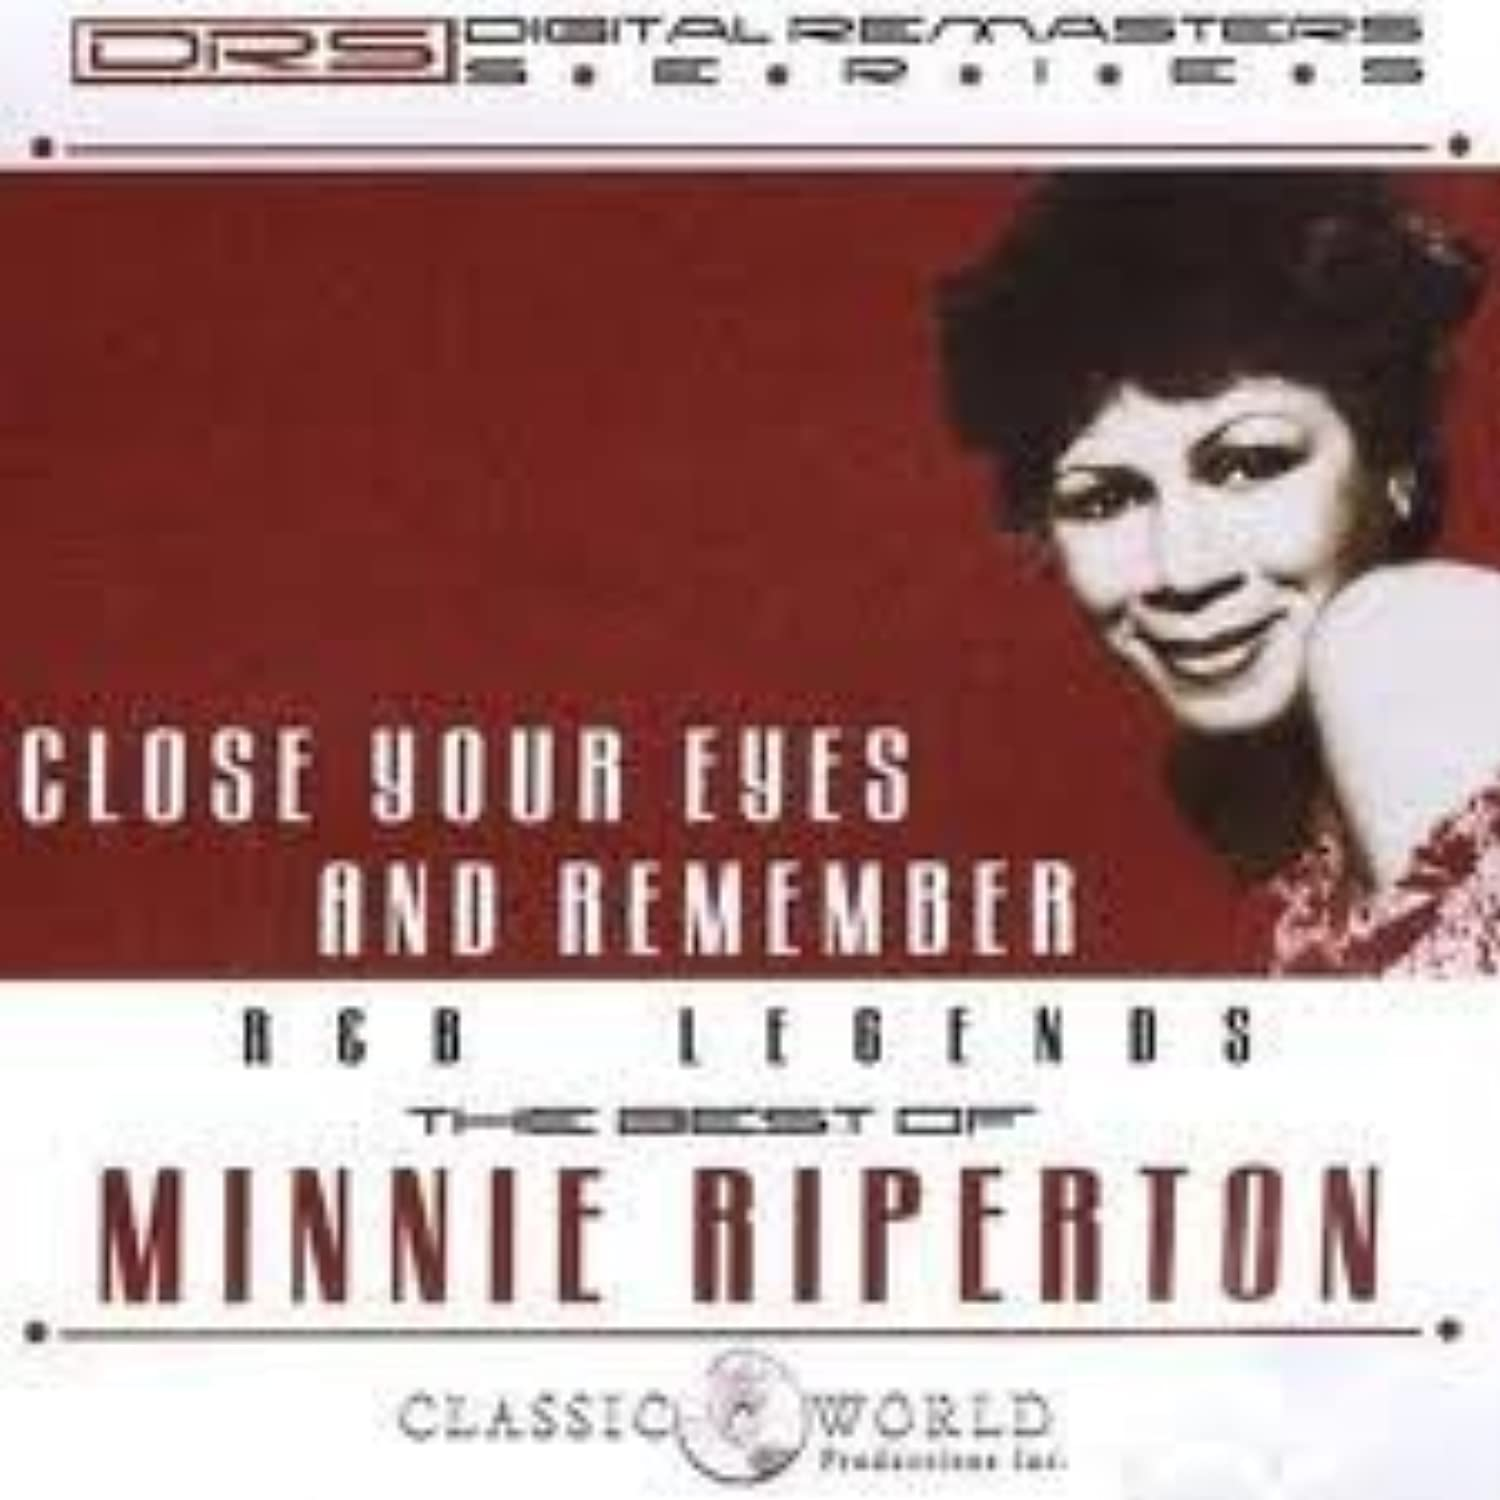 R & B Legends: The Best of Minnie Riperton - Close Your Eyes and Remember by Minnie Riperton dwgnsb2538524